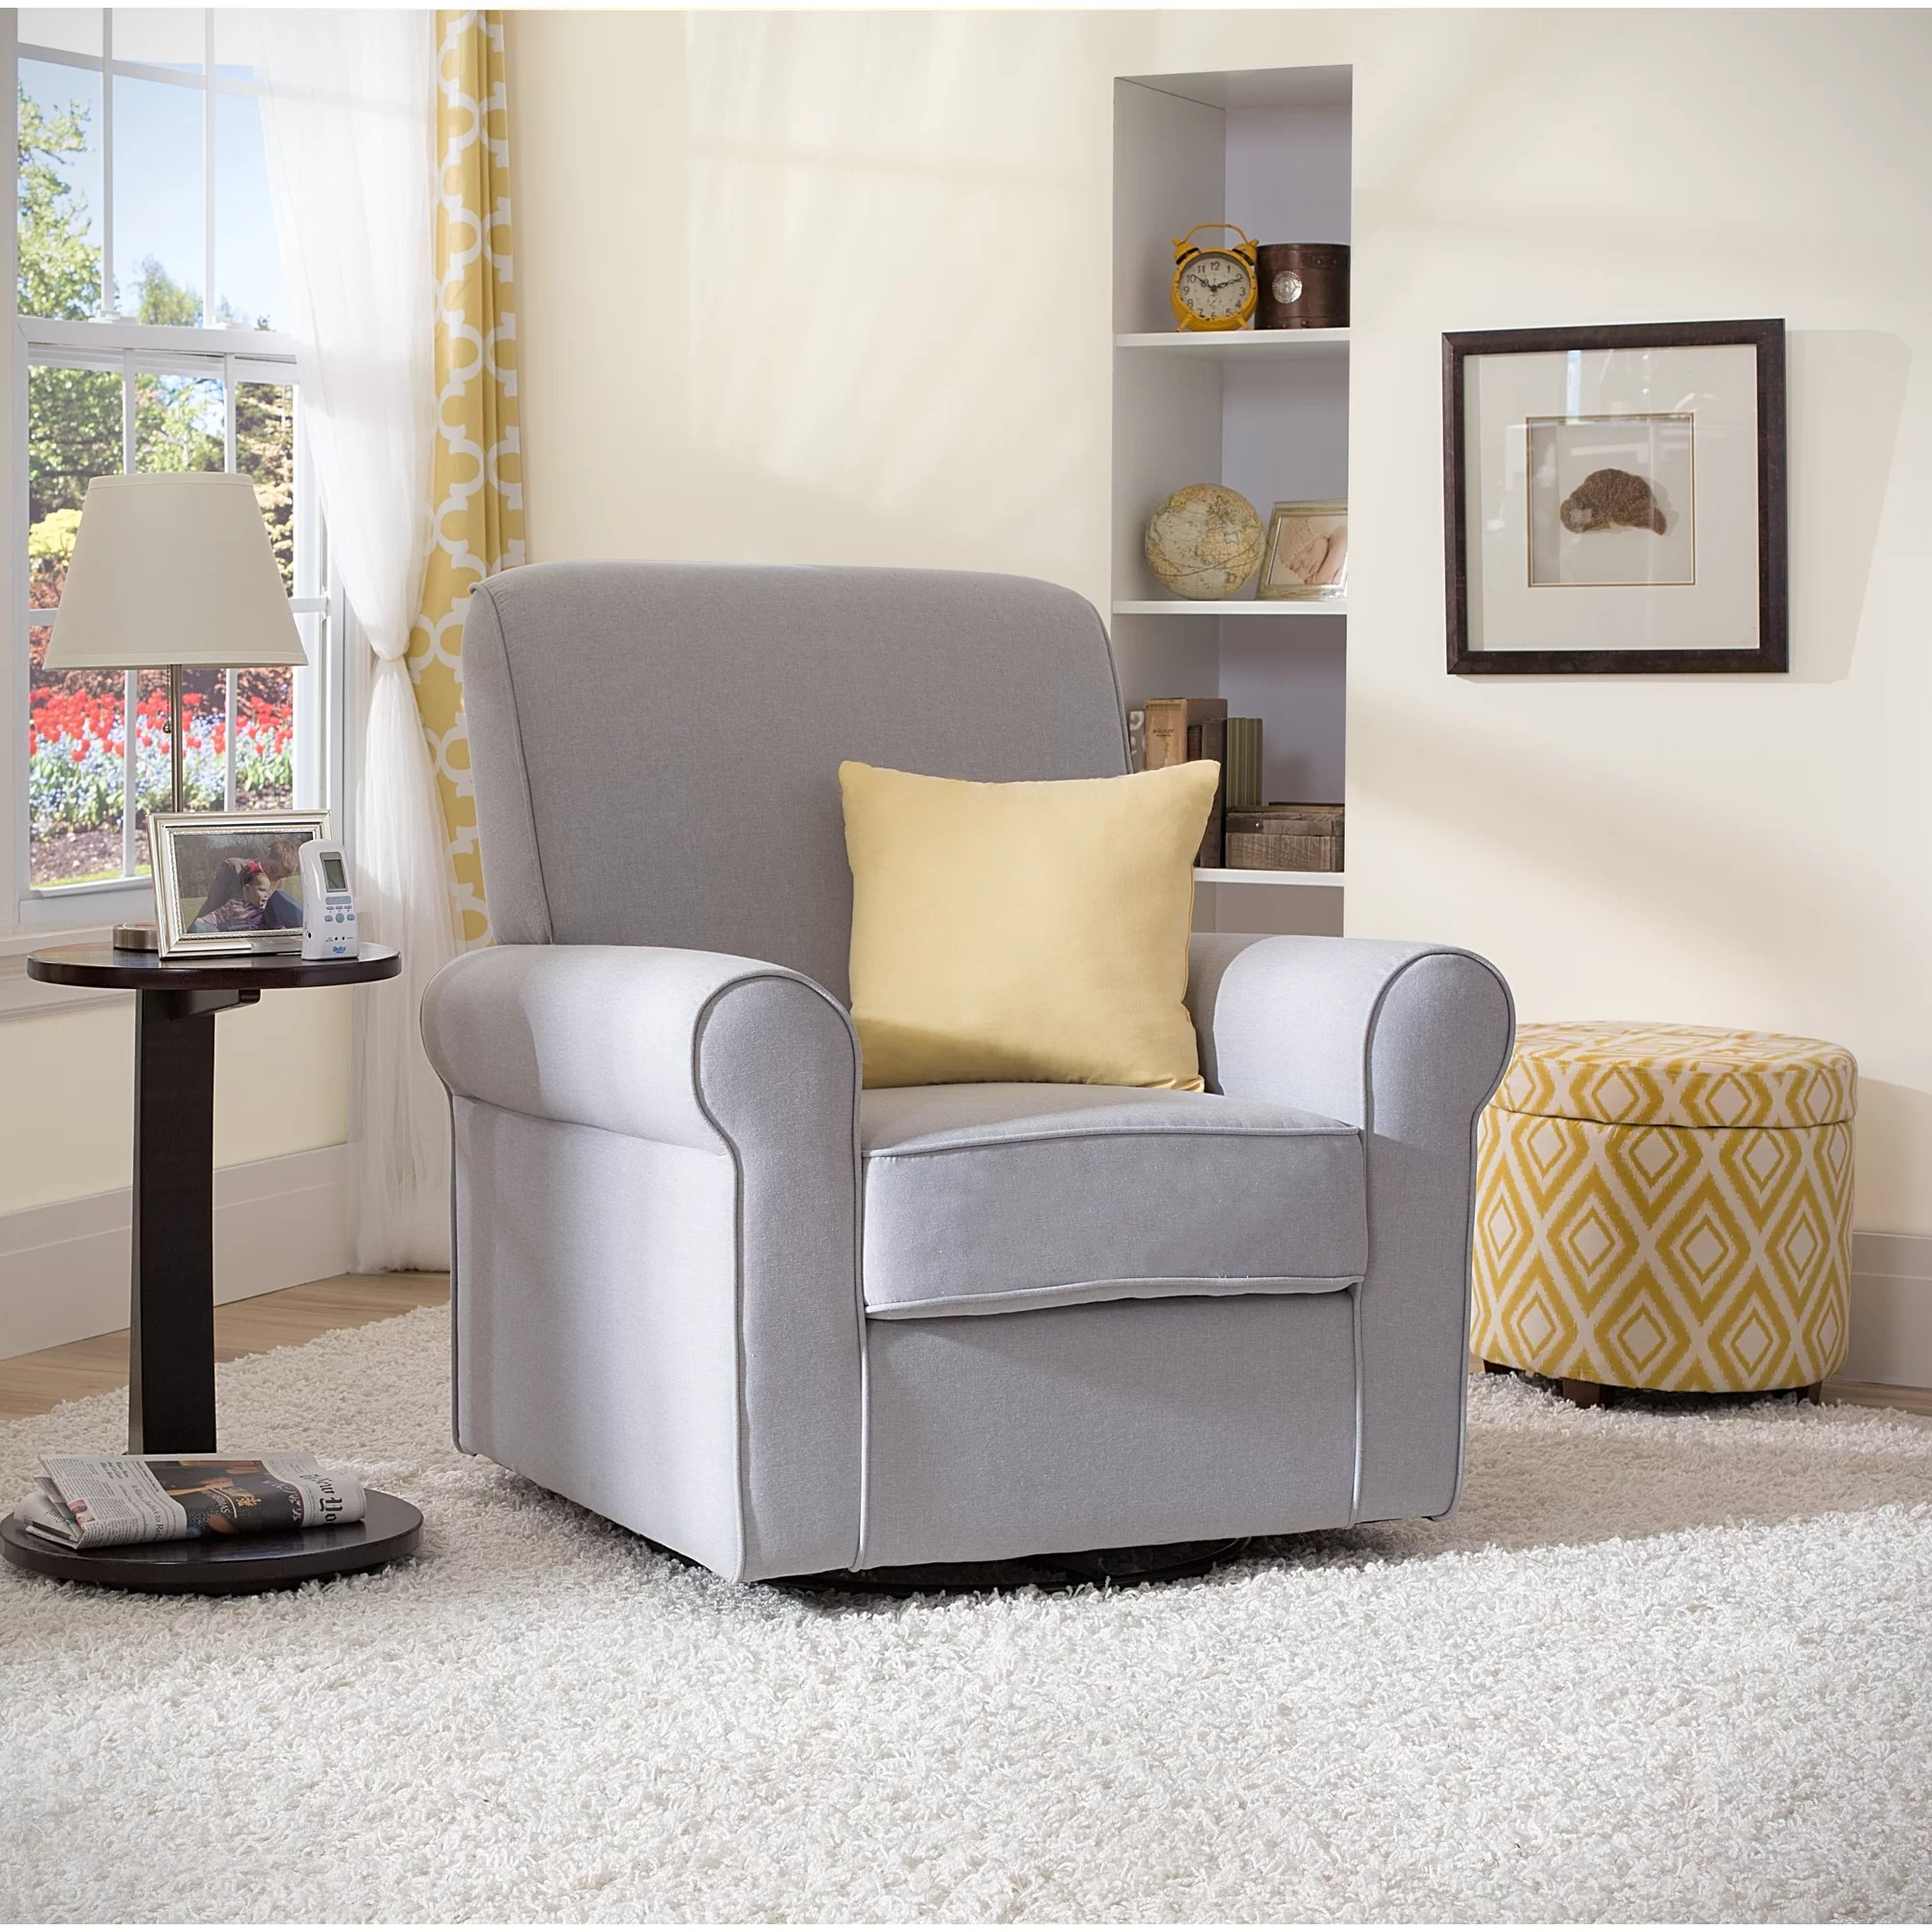 delta avery nursery glider chair grey covers images children swivel and reviews wayfair